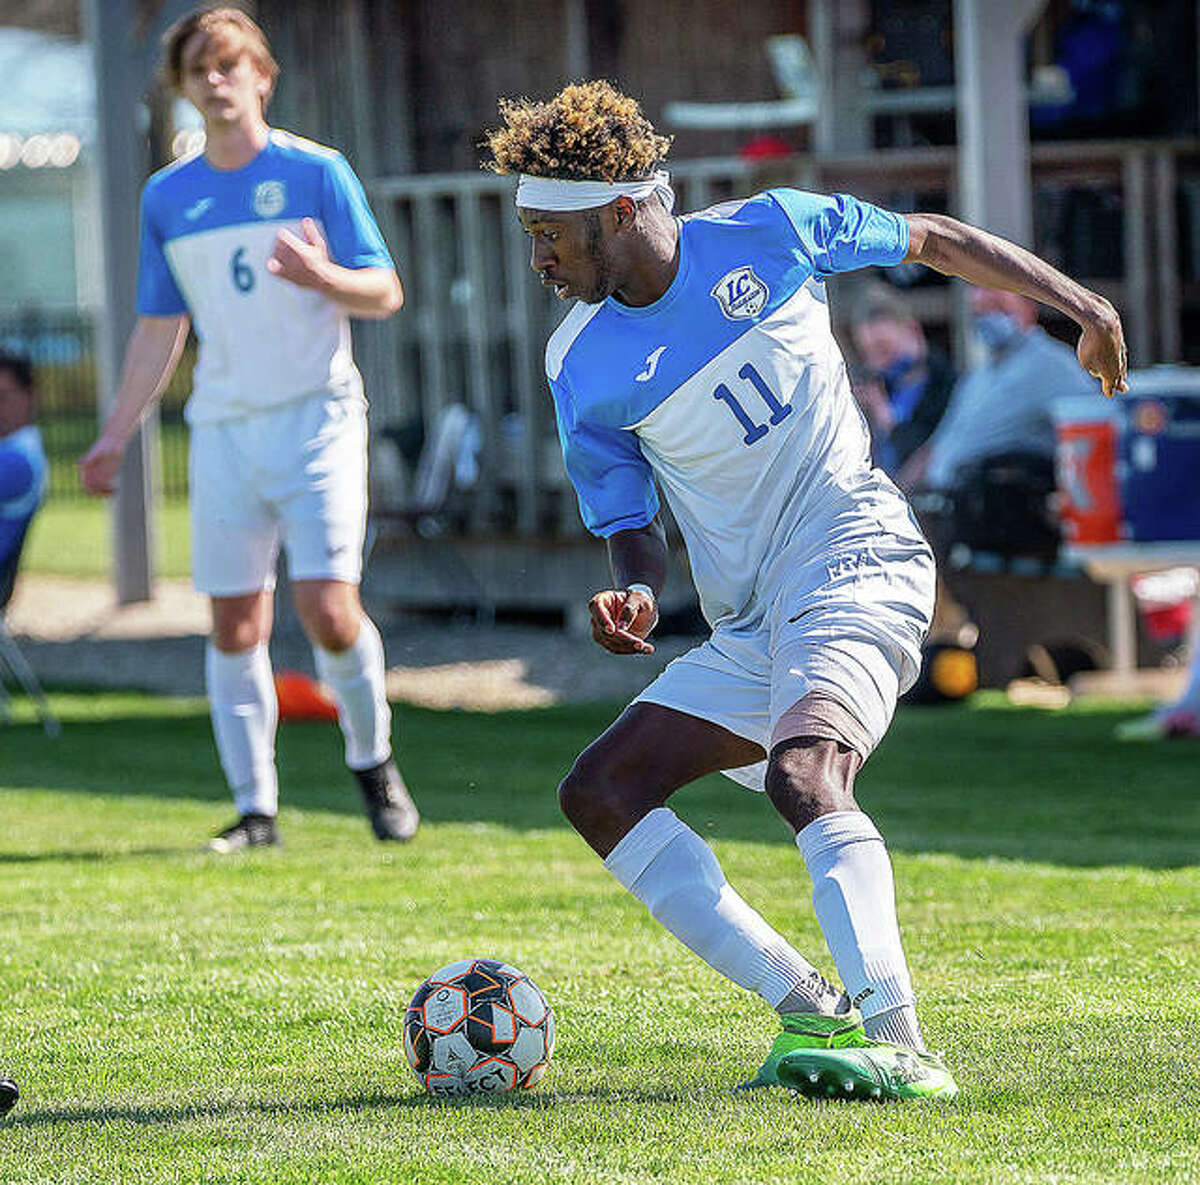 LCCC's Tyriq Gordon (11) a third-year sophomore from London, England, scored three goals and led the Trailblazers to a 6-1 victory over Oakton Community College Saturday evening in Des Plains.